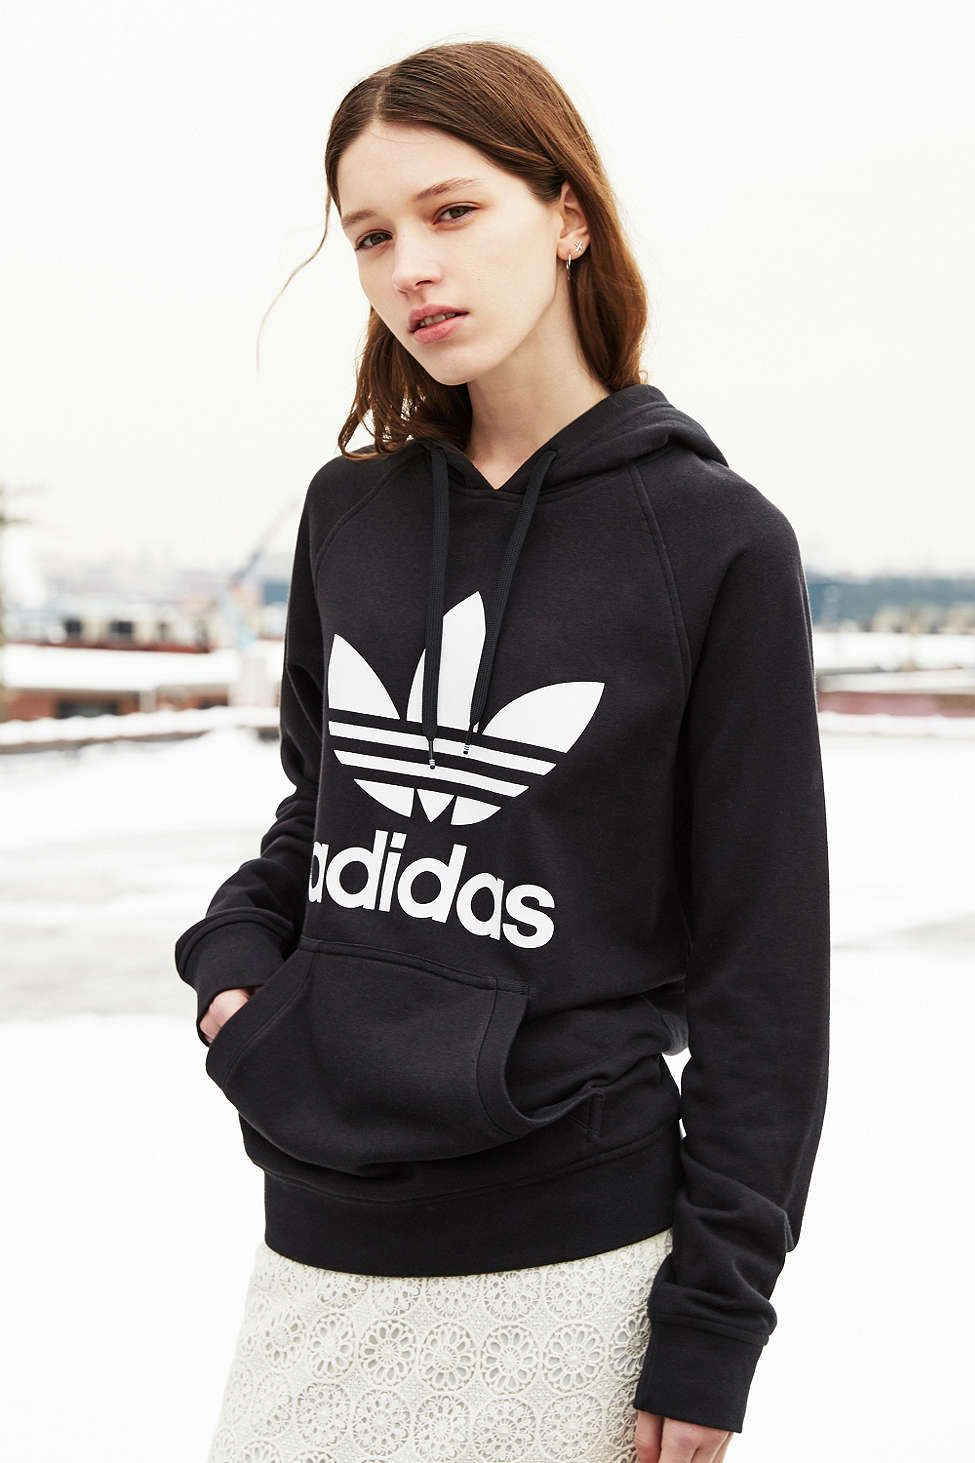 adidas Originals Trefoil Hooded Sweatshirt | Fashion clothes